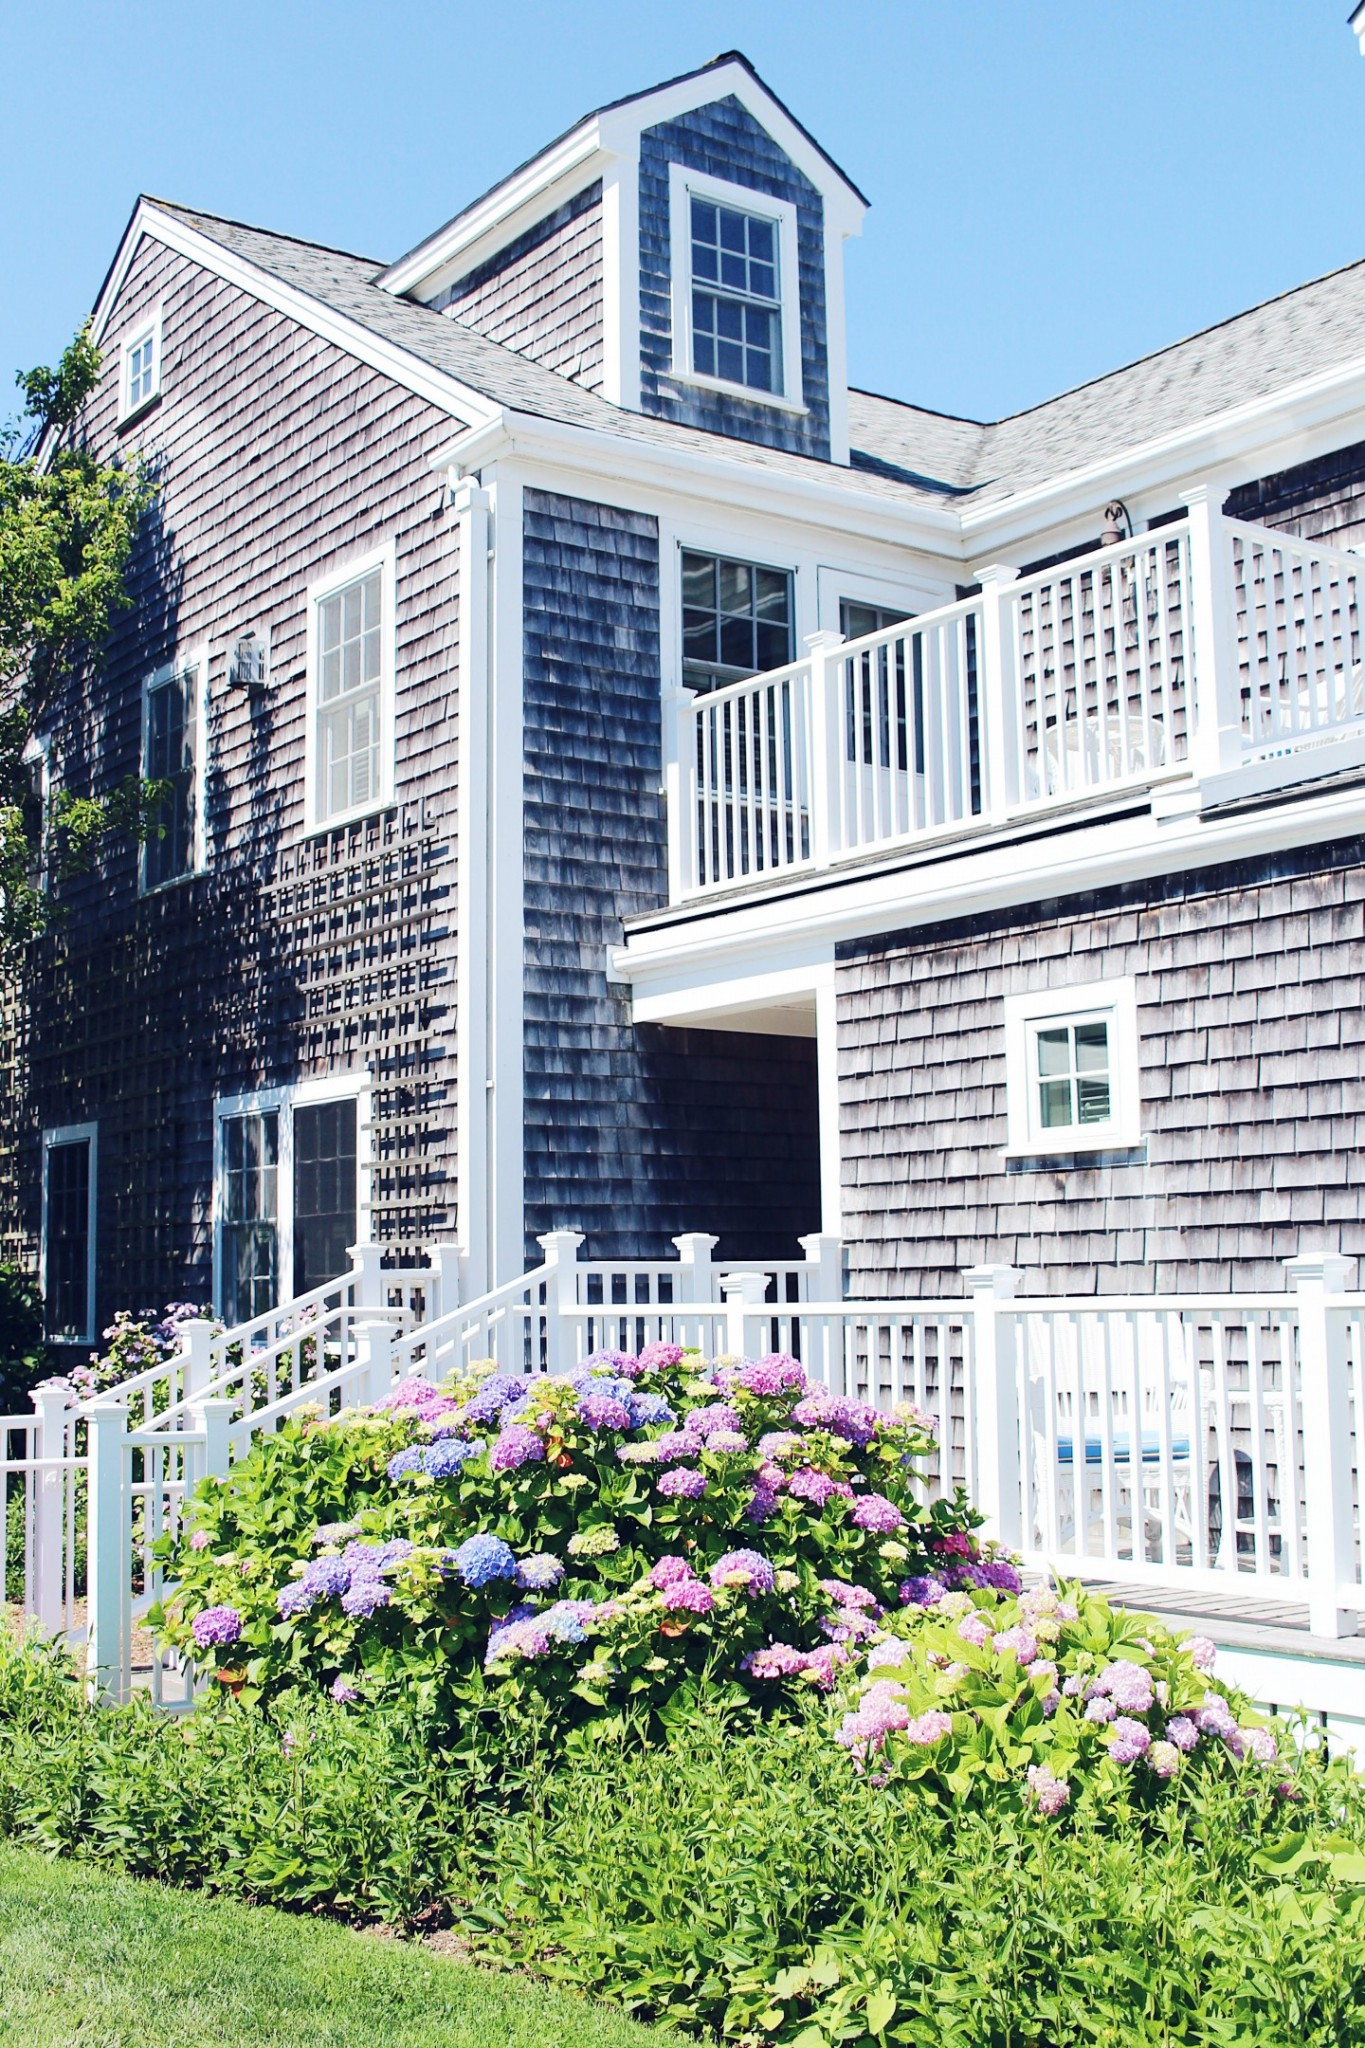 Lifestyle blogger Mollie Moore reviews the White Elephant Nantucket